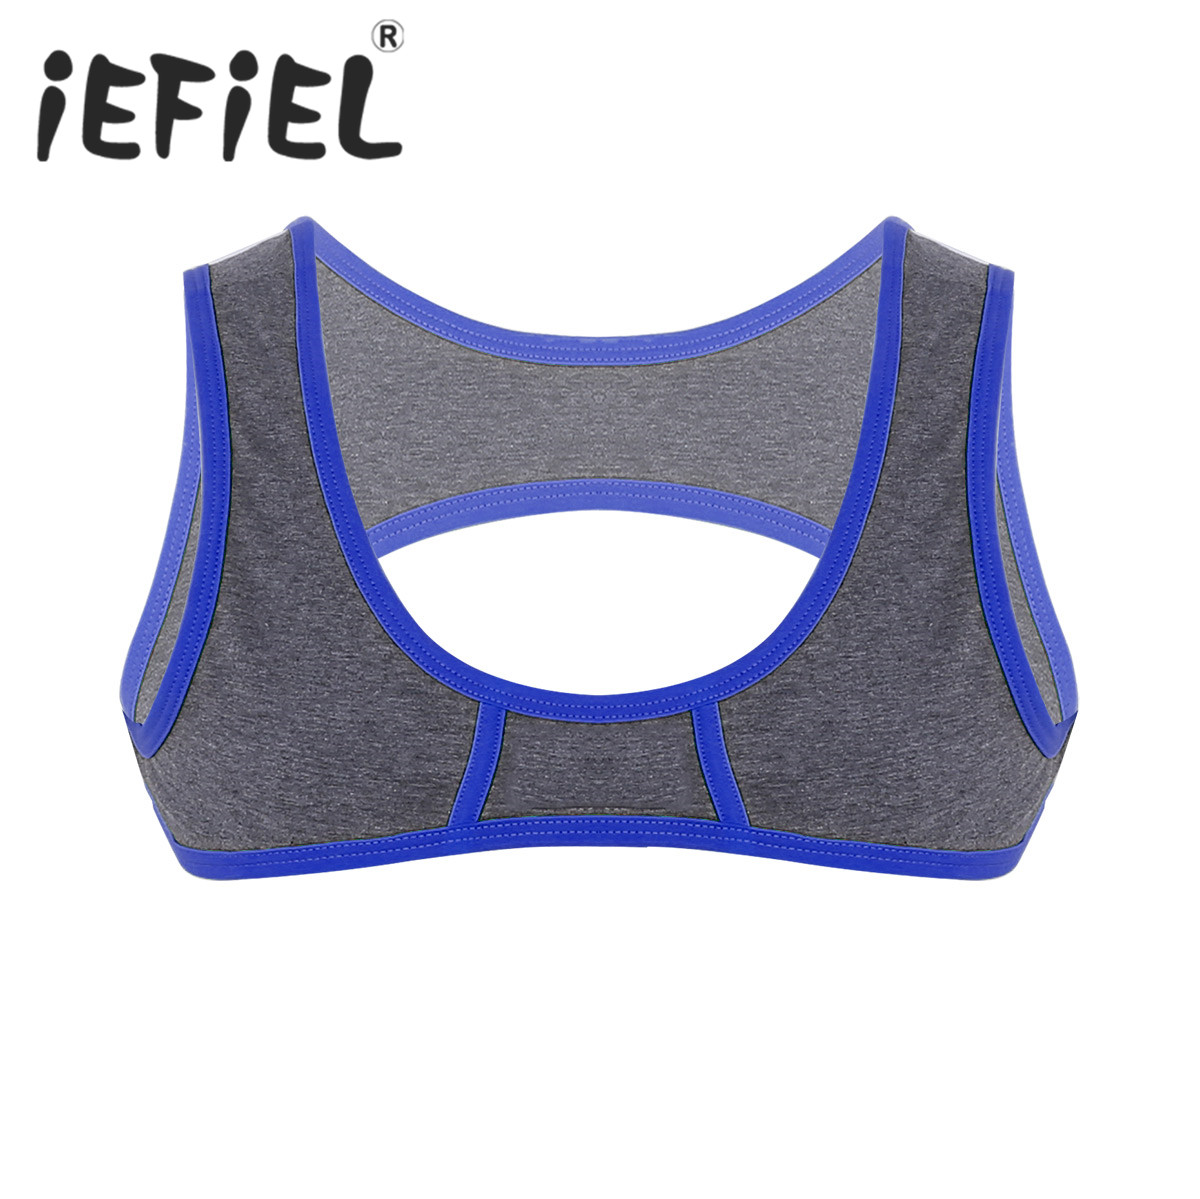 Sexy Fashion Mens Sleeveless Shoulder Chest Strap Harness Muscle Clubwear Costume Half Tank Top Nightwear Performance Clothes